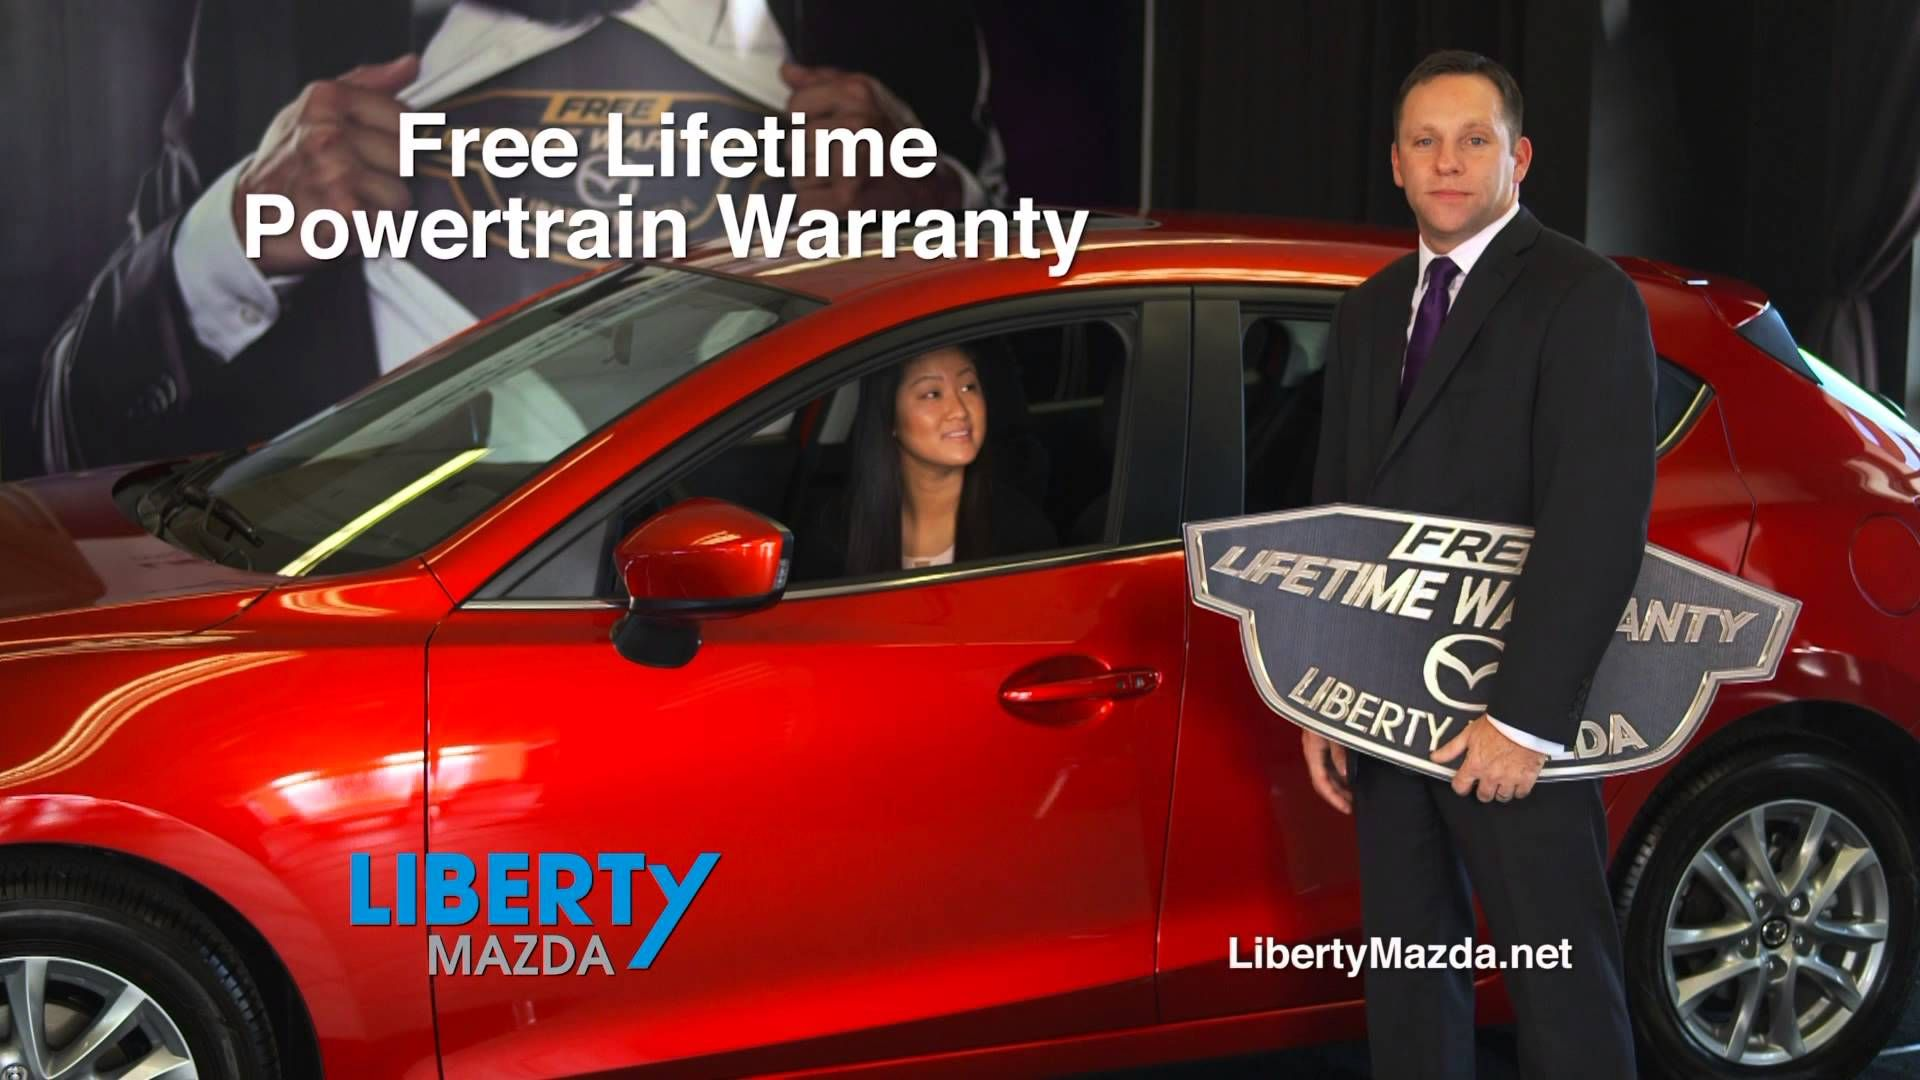 Liberty Mazda, Part Of The Executive Auto Group, Is The Only Mazda Dealer In